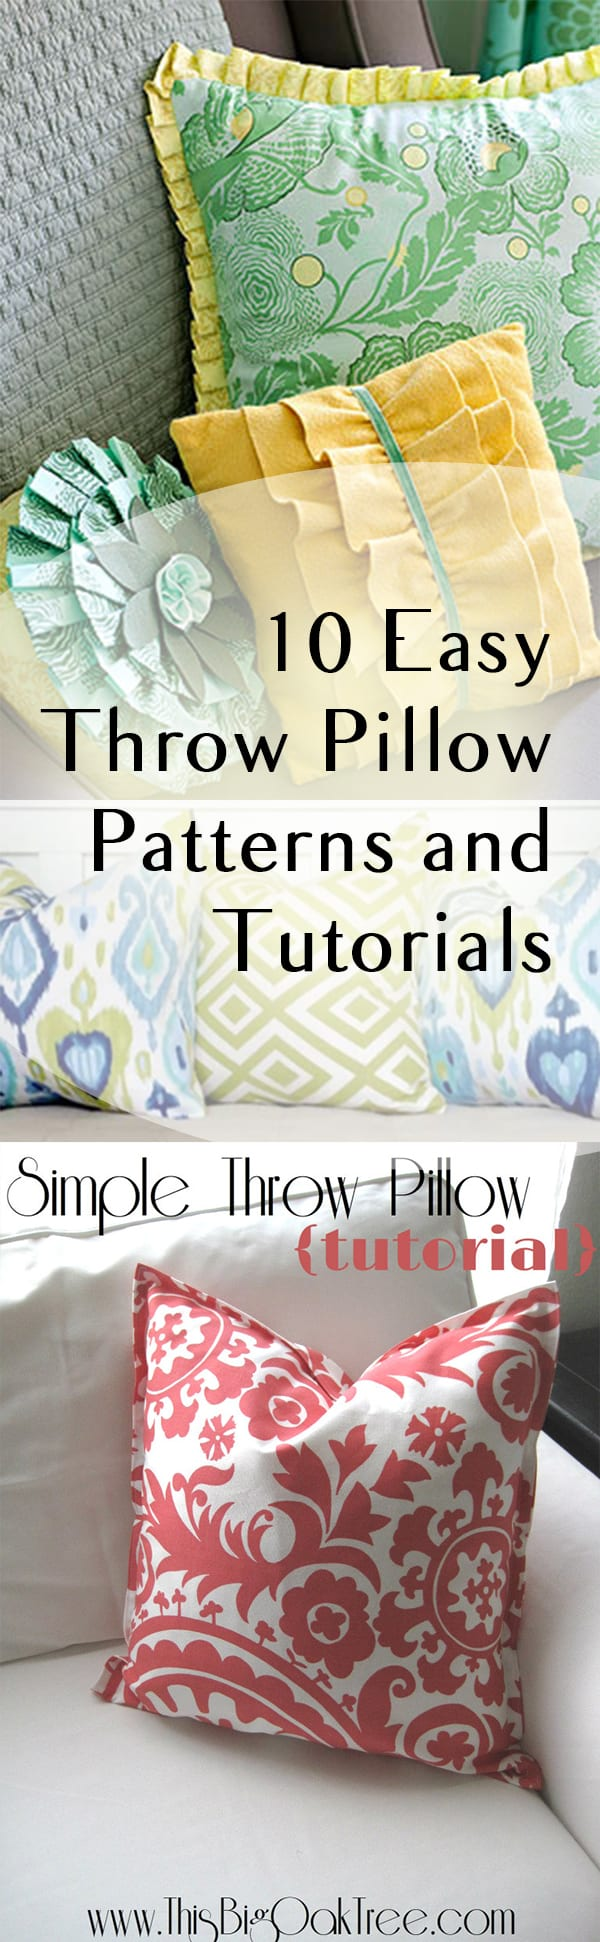 Diy Throw Pillow Instructions : 10 Easy DIY Throw Pillow Patterns - How To Build It